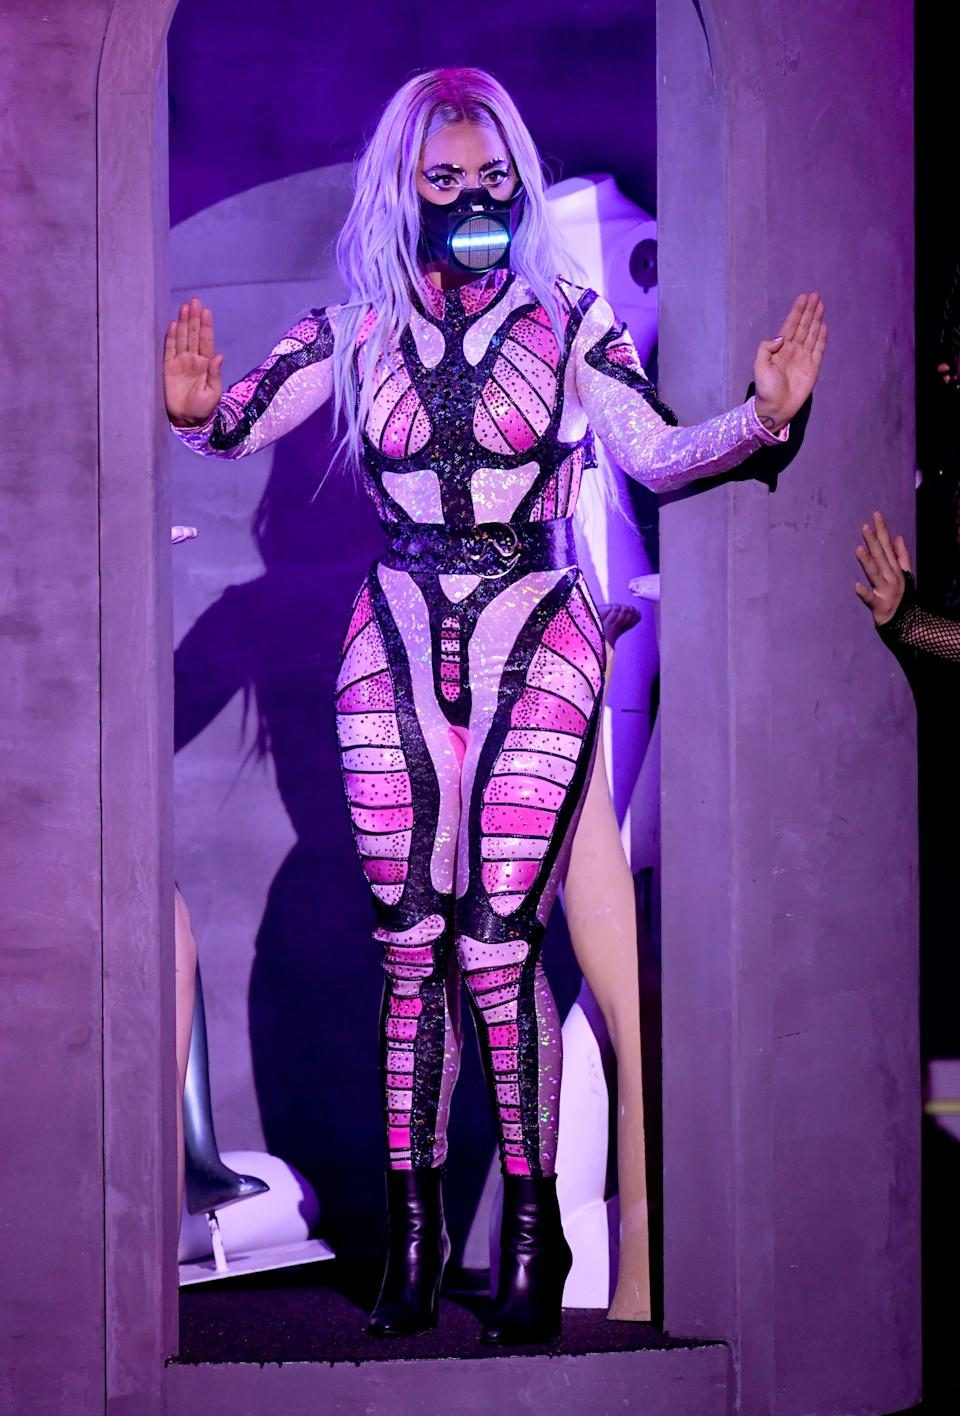 """For her third and final performance of the night, Gaga put on her first of two catsuits, this one by BCALLA. With it, she wore another digital face mask by Smooth Technology, created in collaboration with visual artist Diego Montoya. <br><br><em>Lady Gaga is wearing a BCALLA catsuit, Saint Laurent shoes, and a Smooth Technology x Diego Montoya digital mask.</em><br><br><br><br><br><br><span class=""""copyright"""">Photo: Kevin Winter/Getty Images.</span>"""